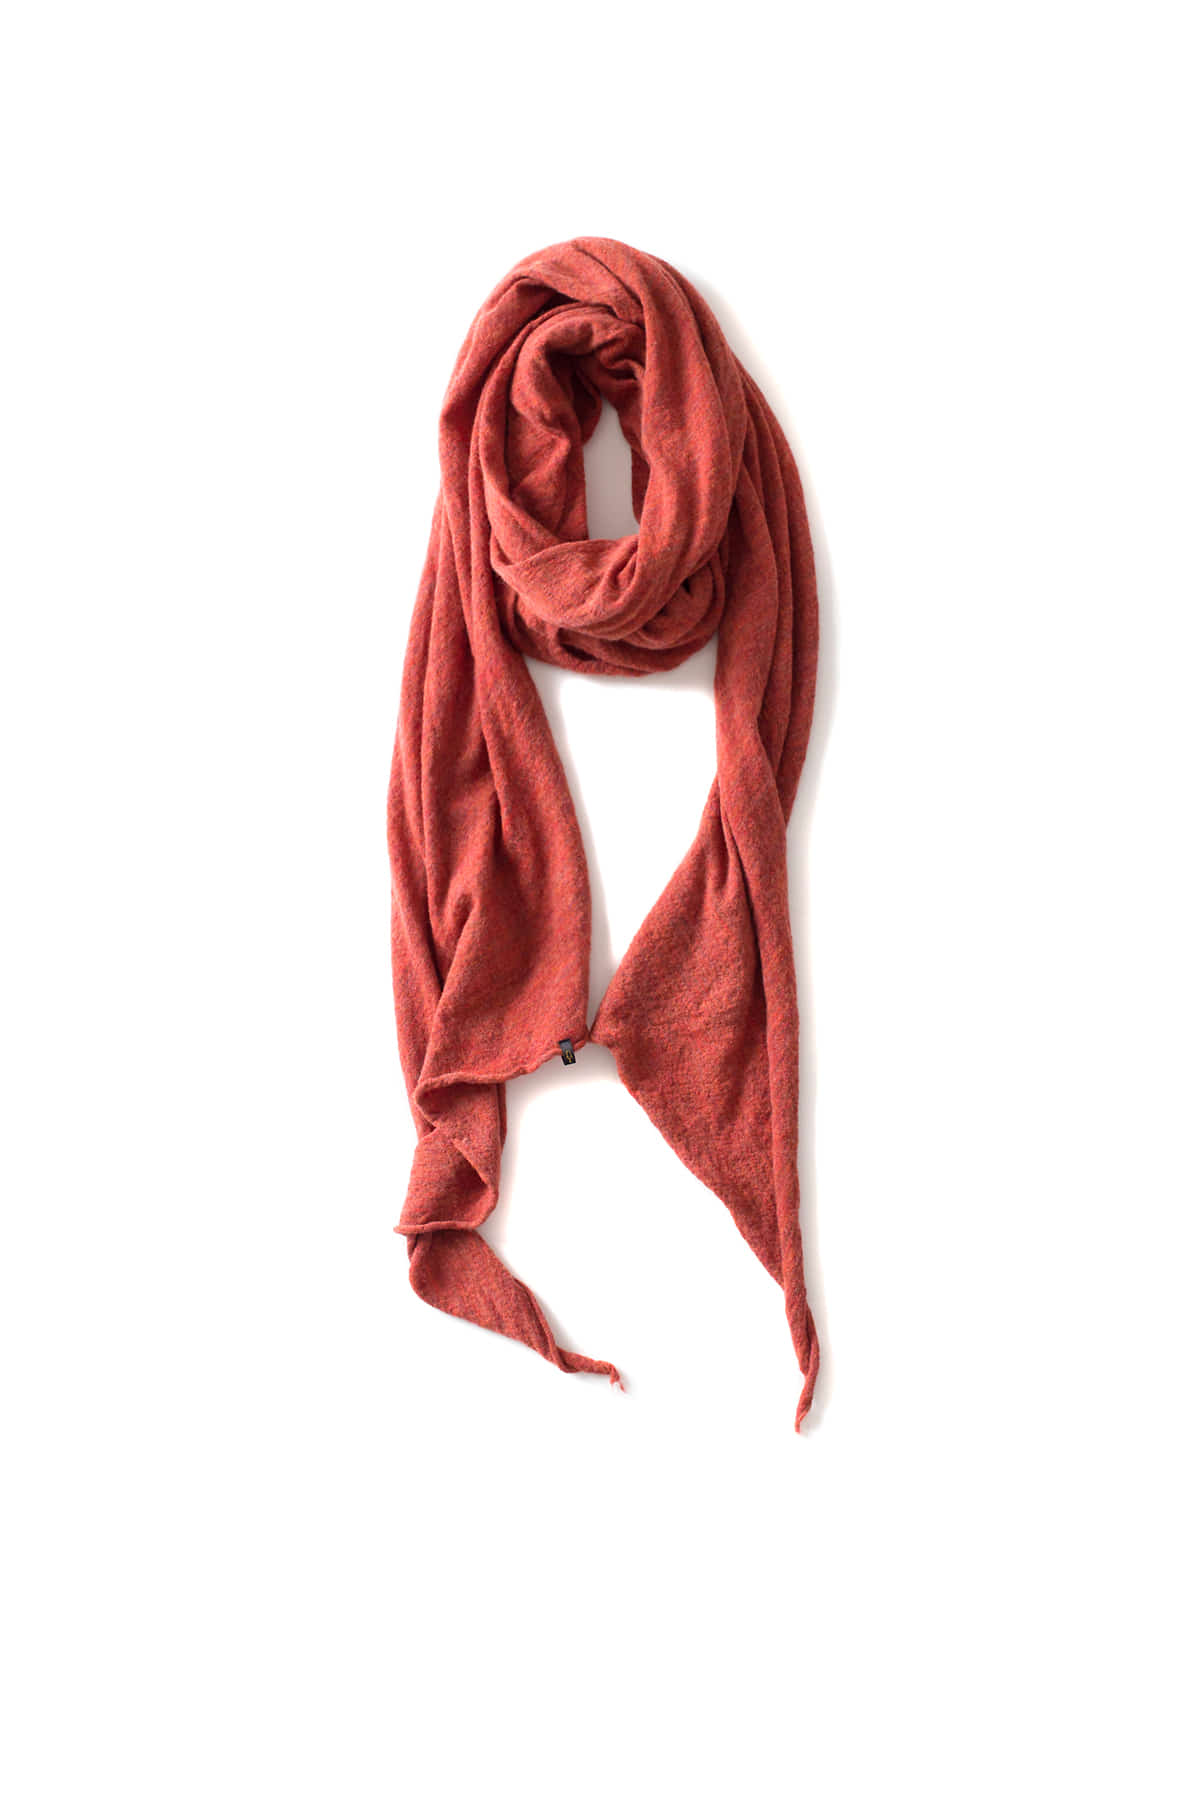 RYU : Washable Wool Gauze Stole (Orange)